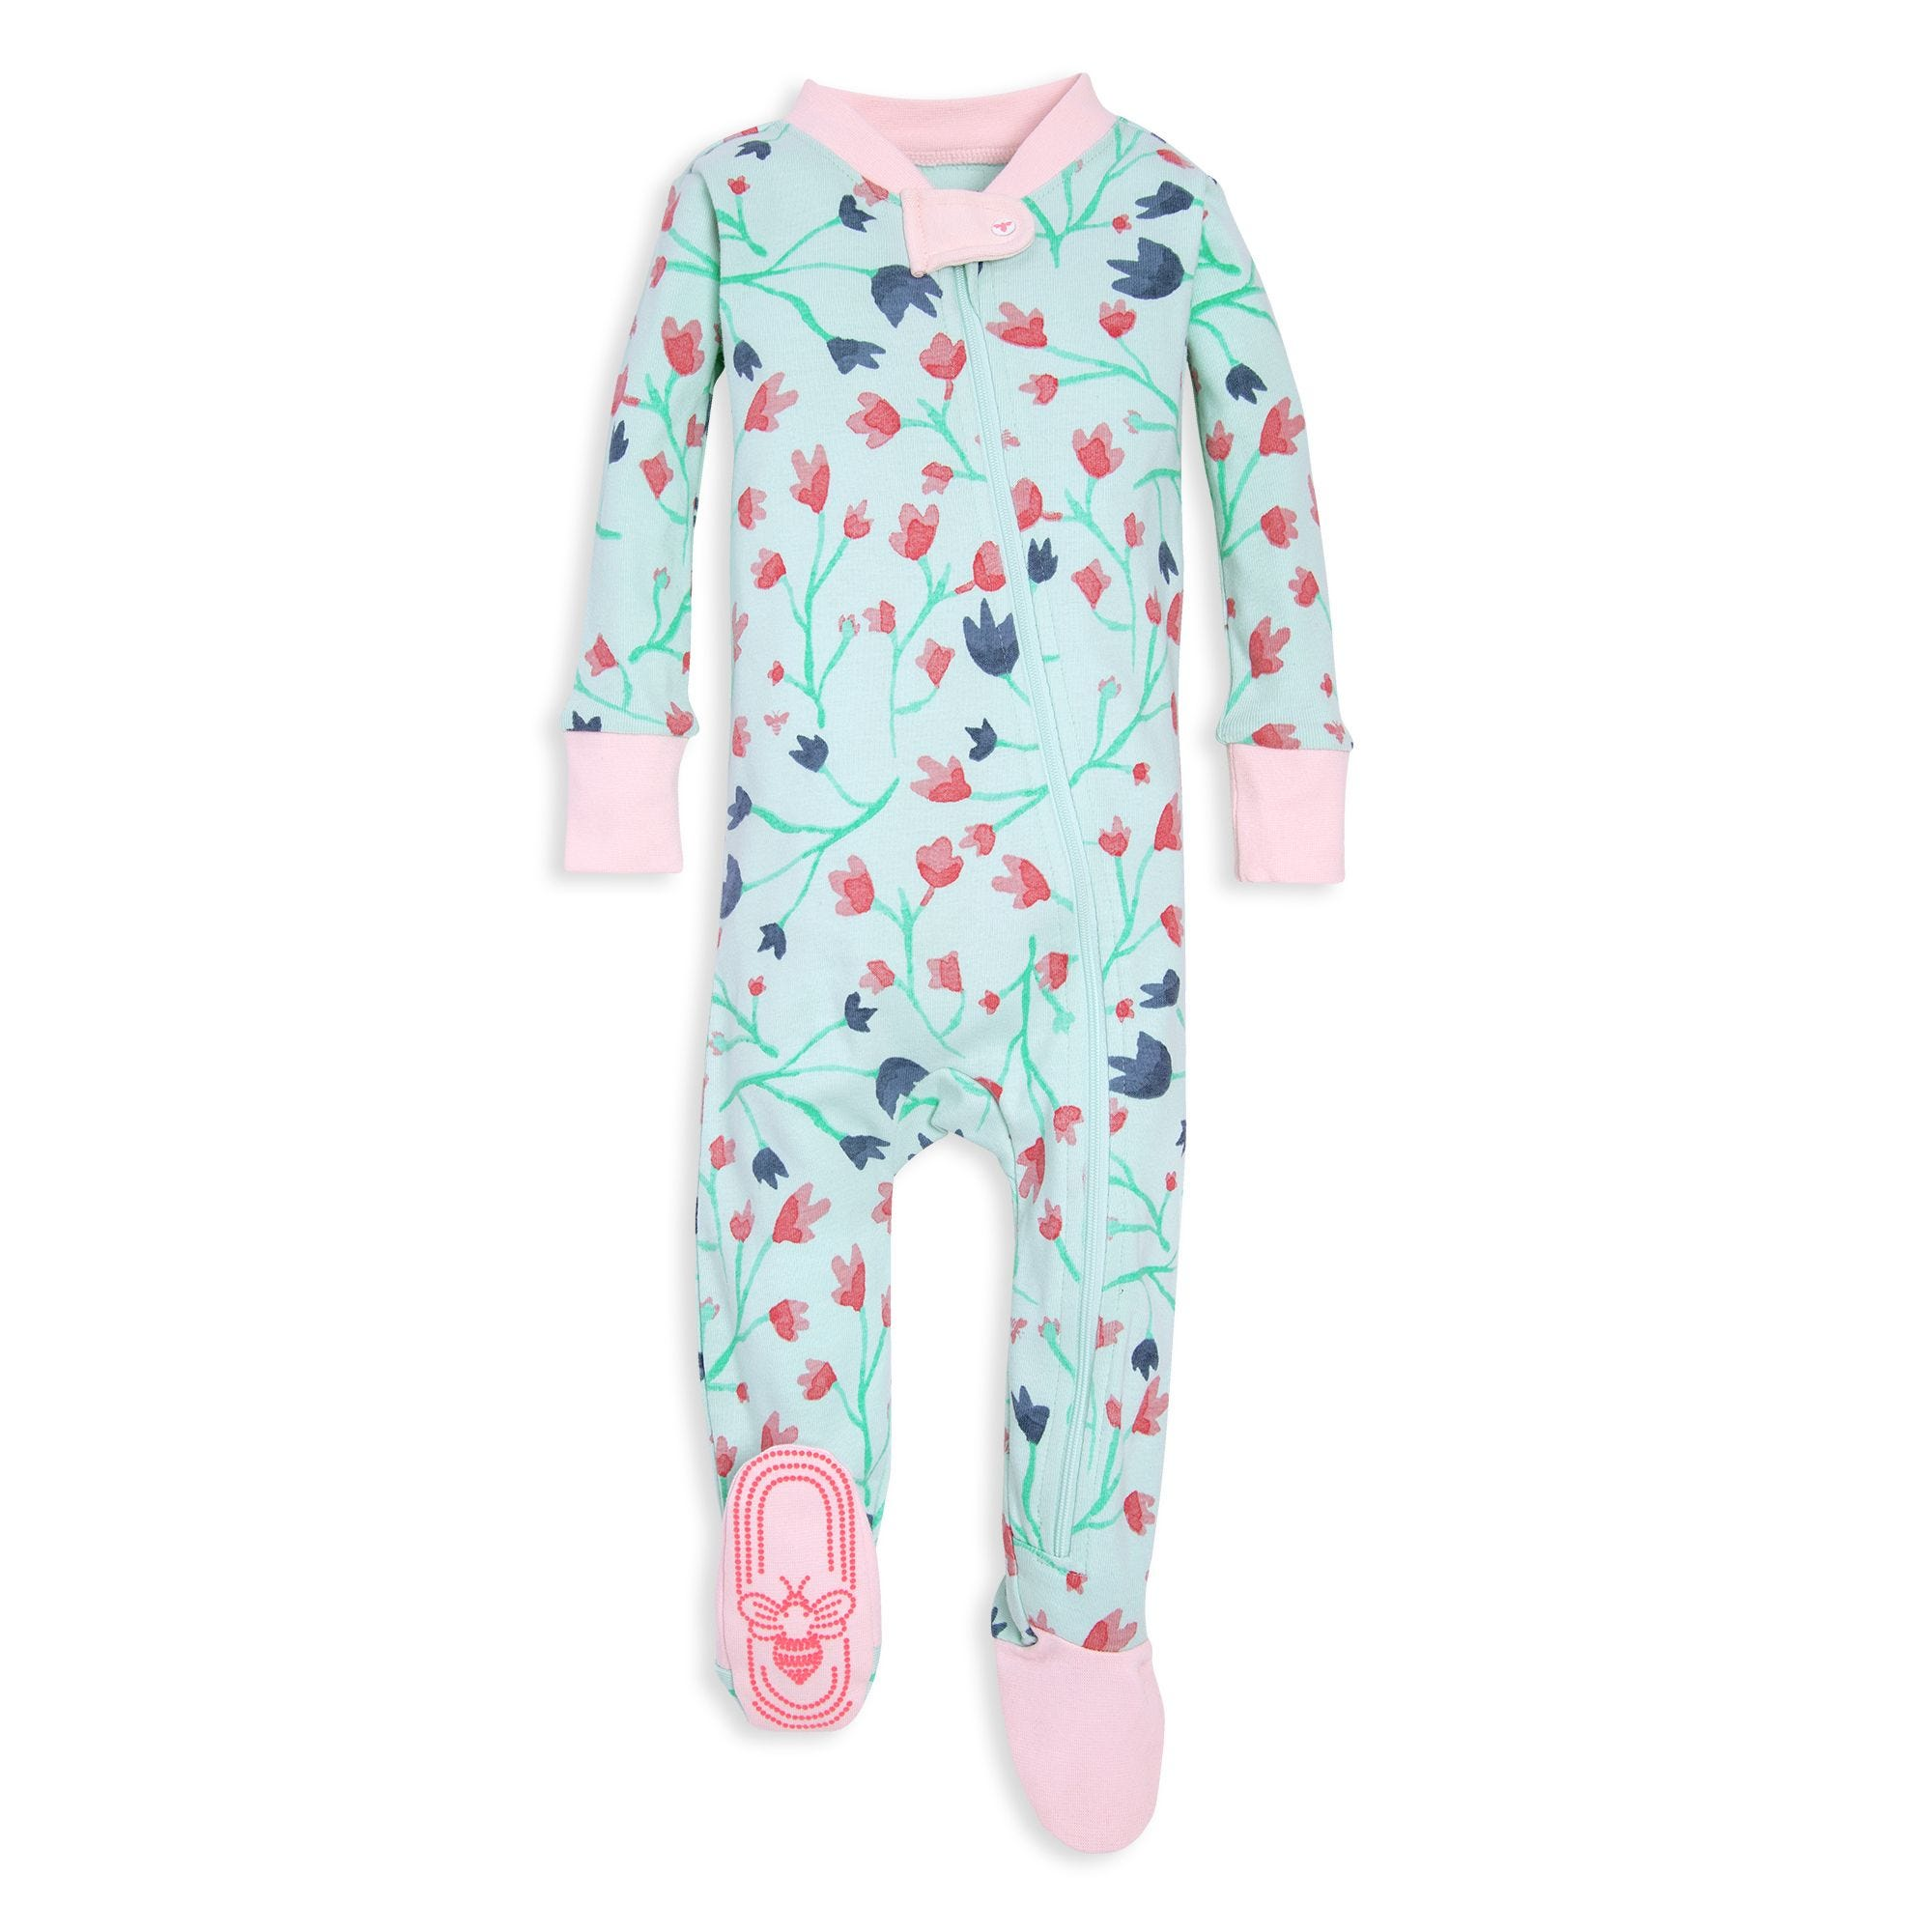 4609196c044c Bethel Woods Floral Print Organic Baby Zip Up Footed Pajamas